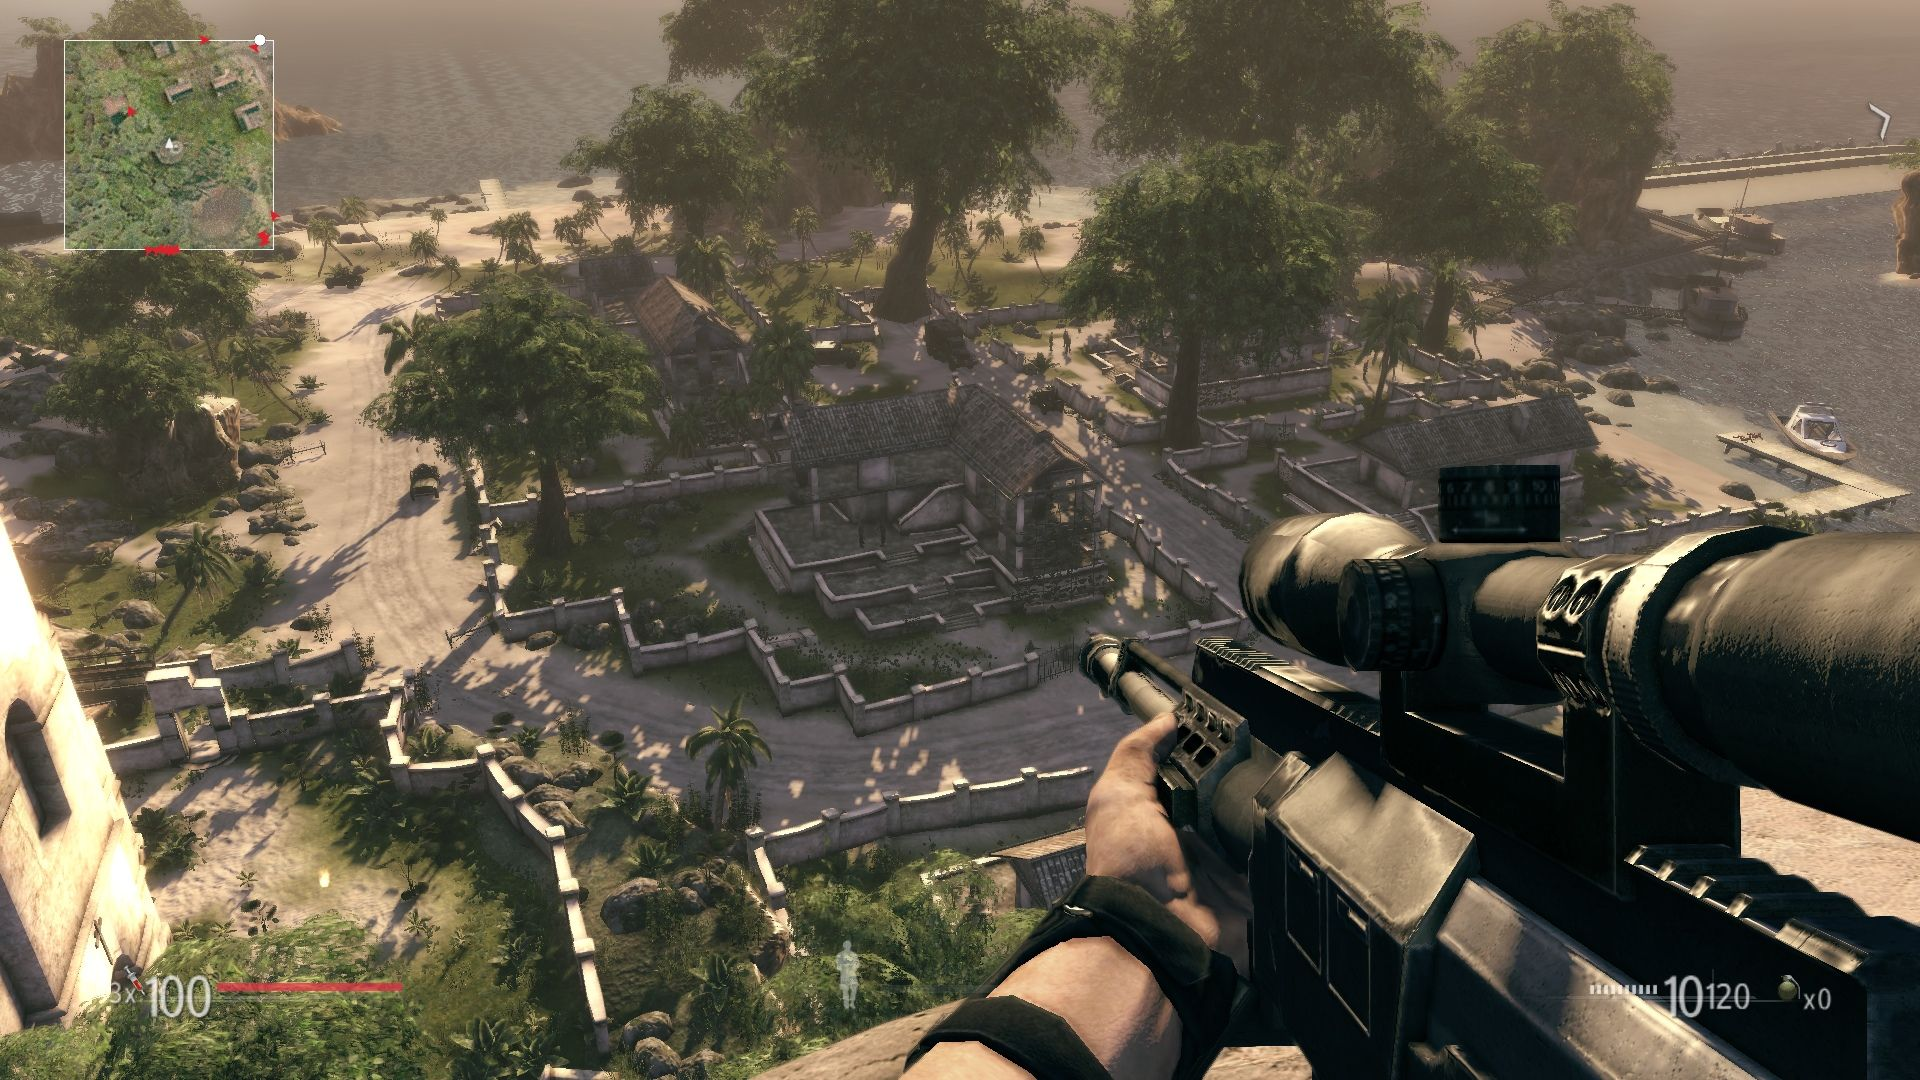 download sniper ghost warrior game torrent for free http